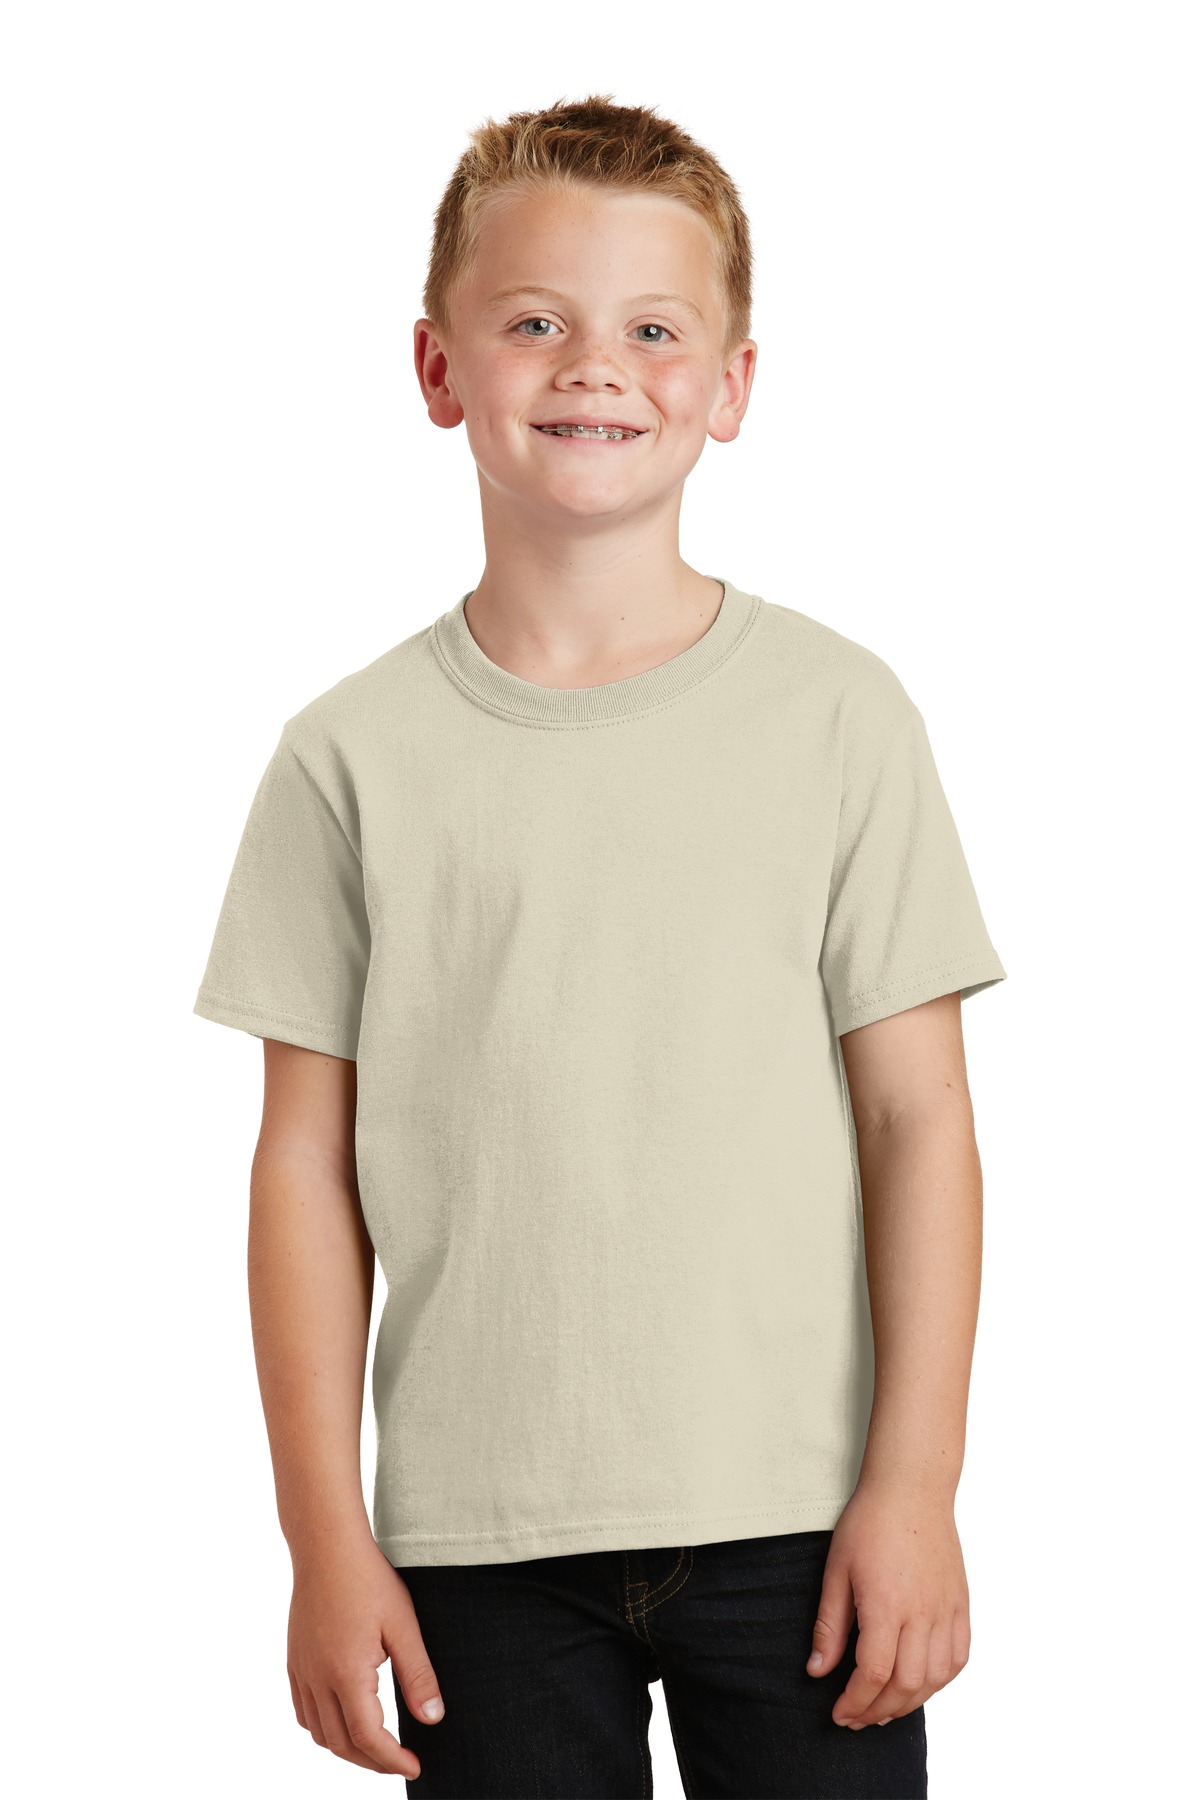 Port & Company ®  - Youth Core Cotton Tee. PC54Y - Natural